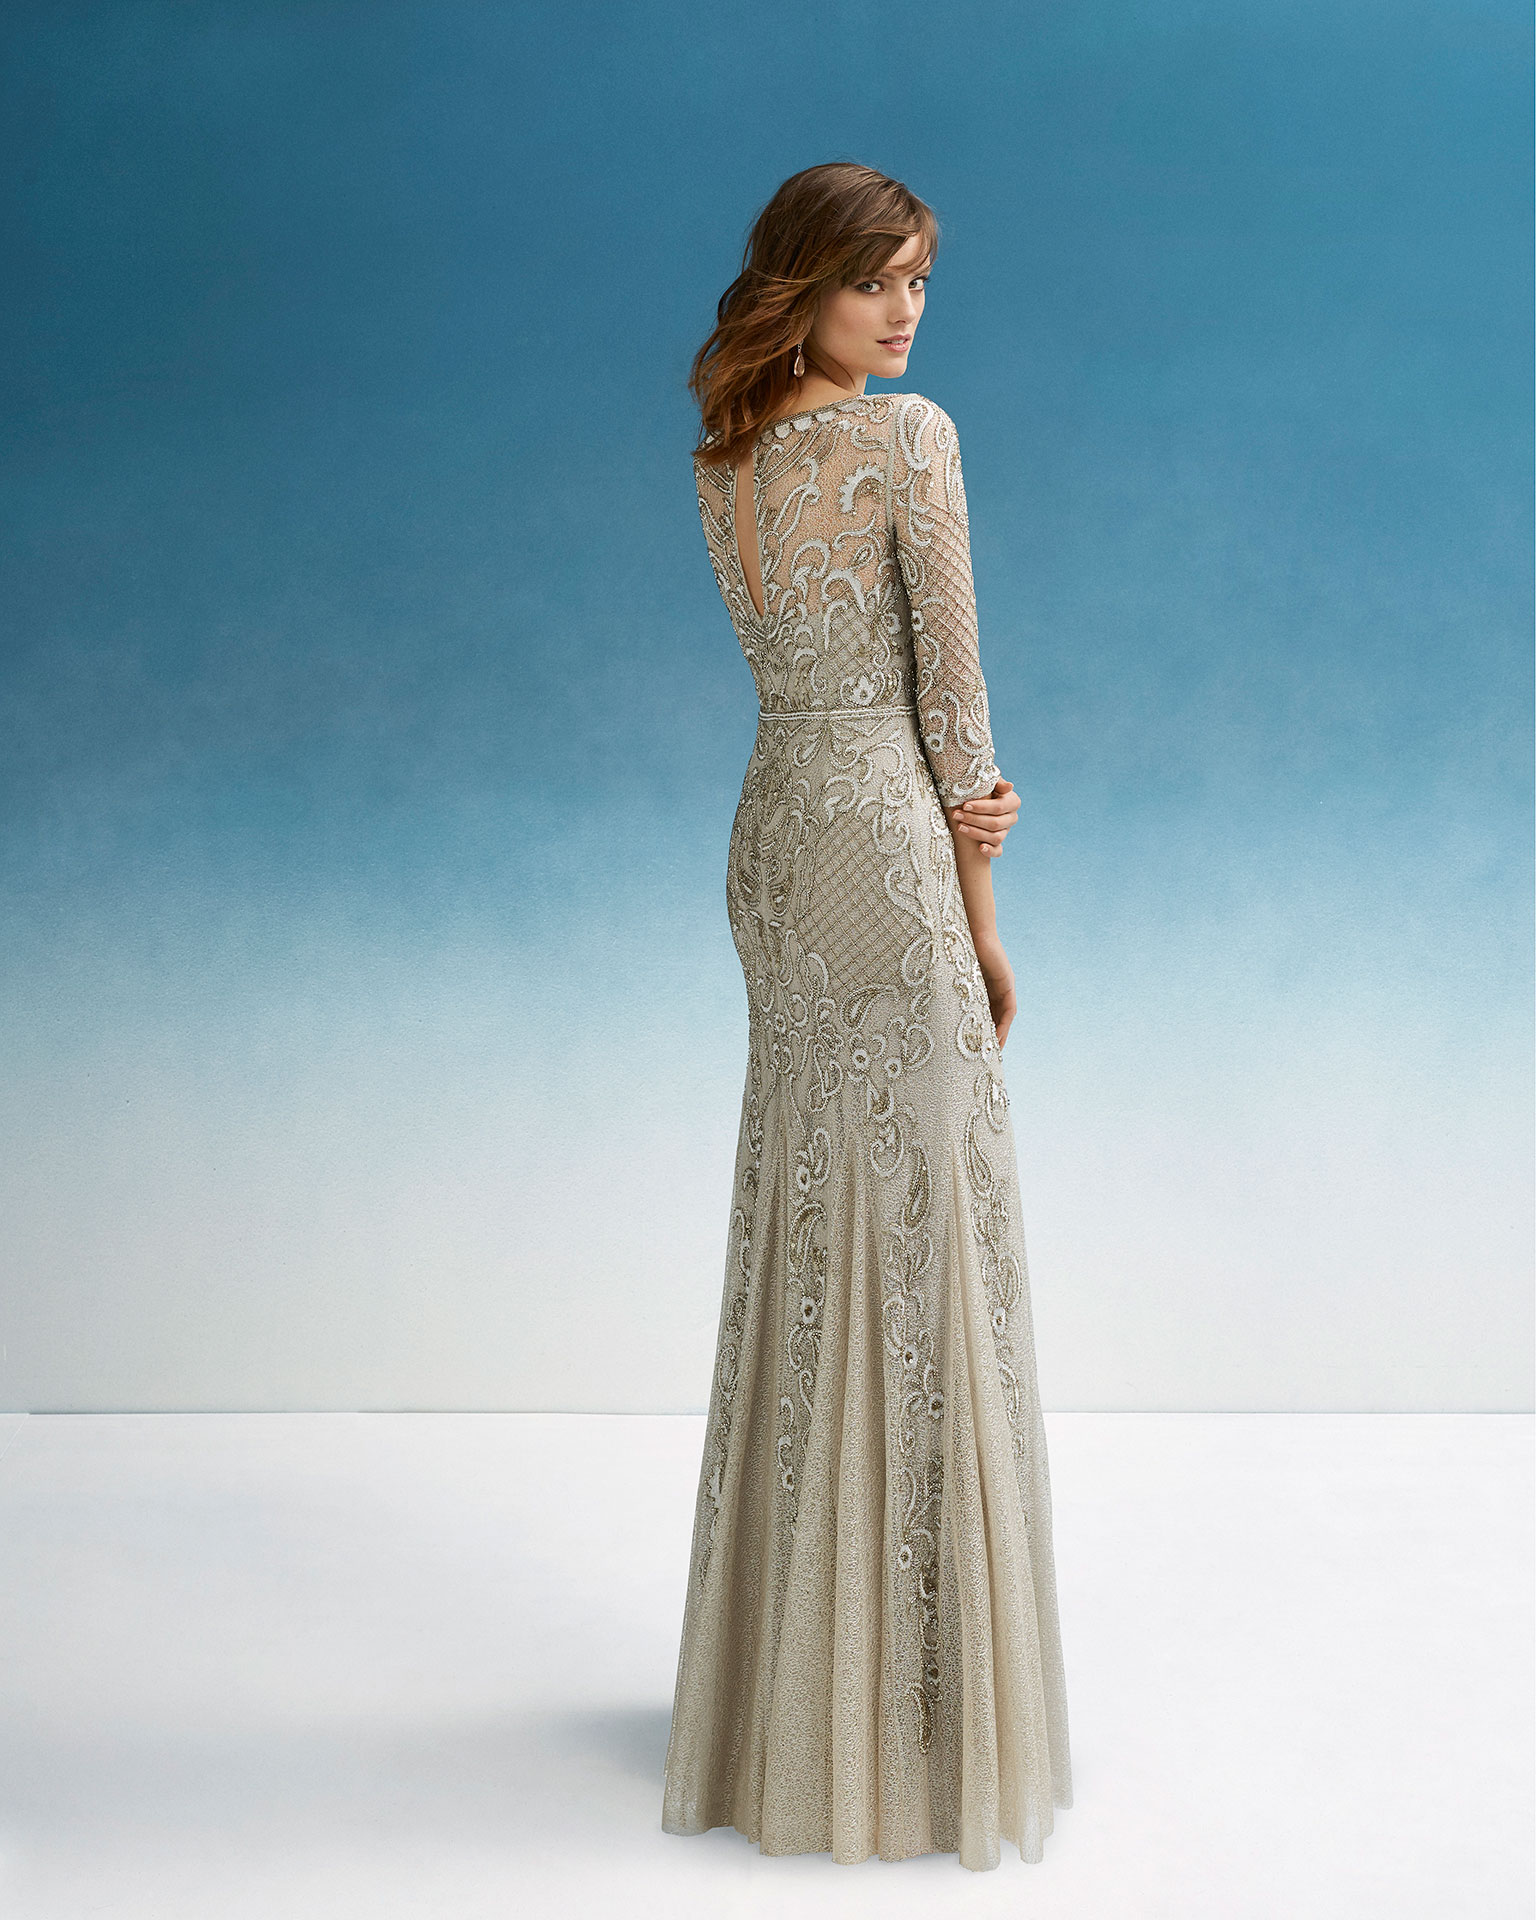 Beaded cocktail dress. With round neckline and long sleeves. 2019 FIESTA AIRE BARCELONA Collection.